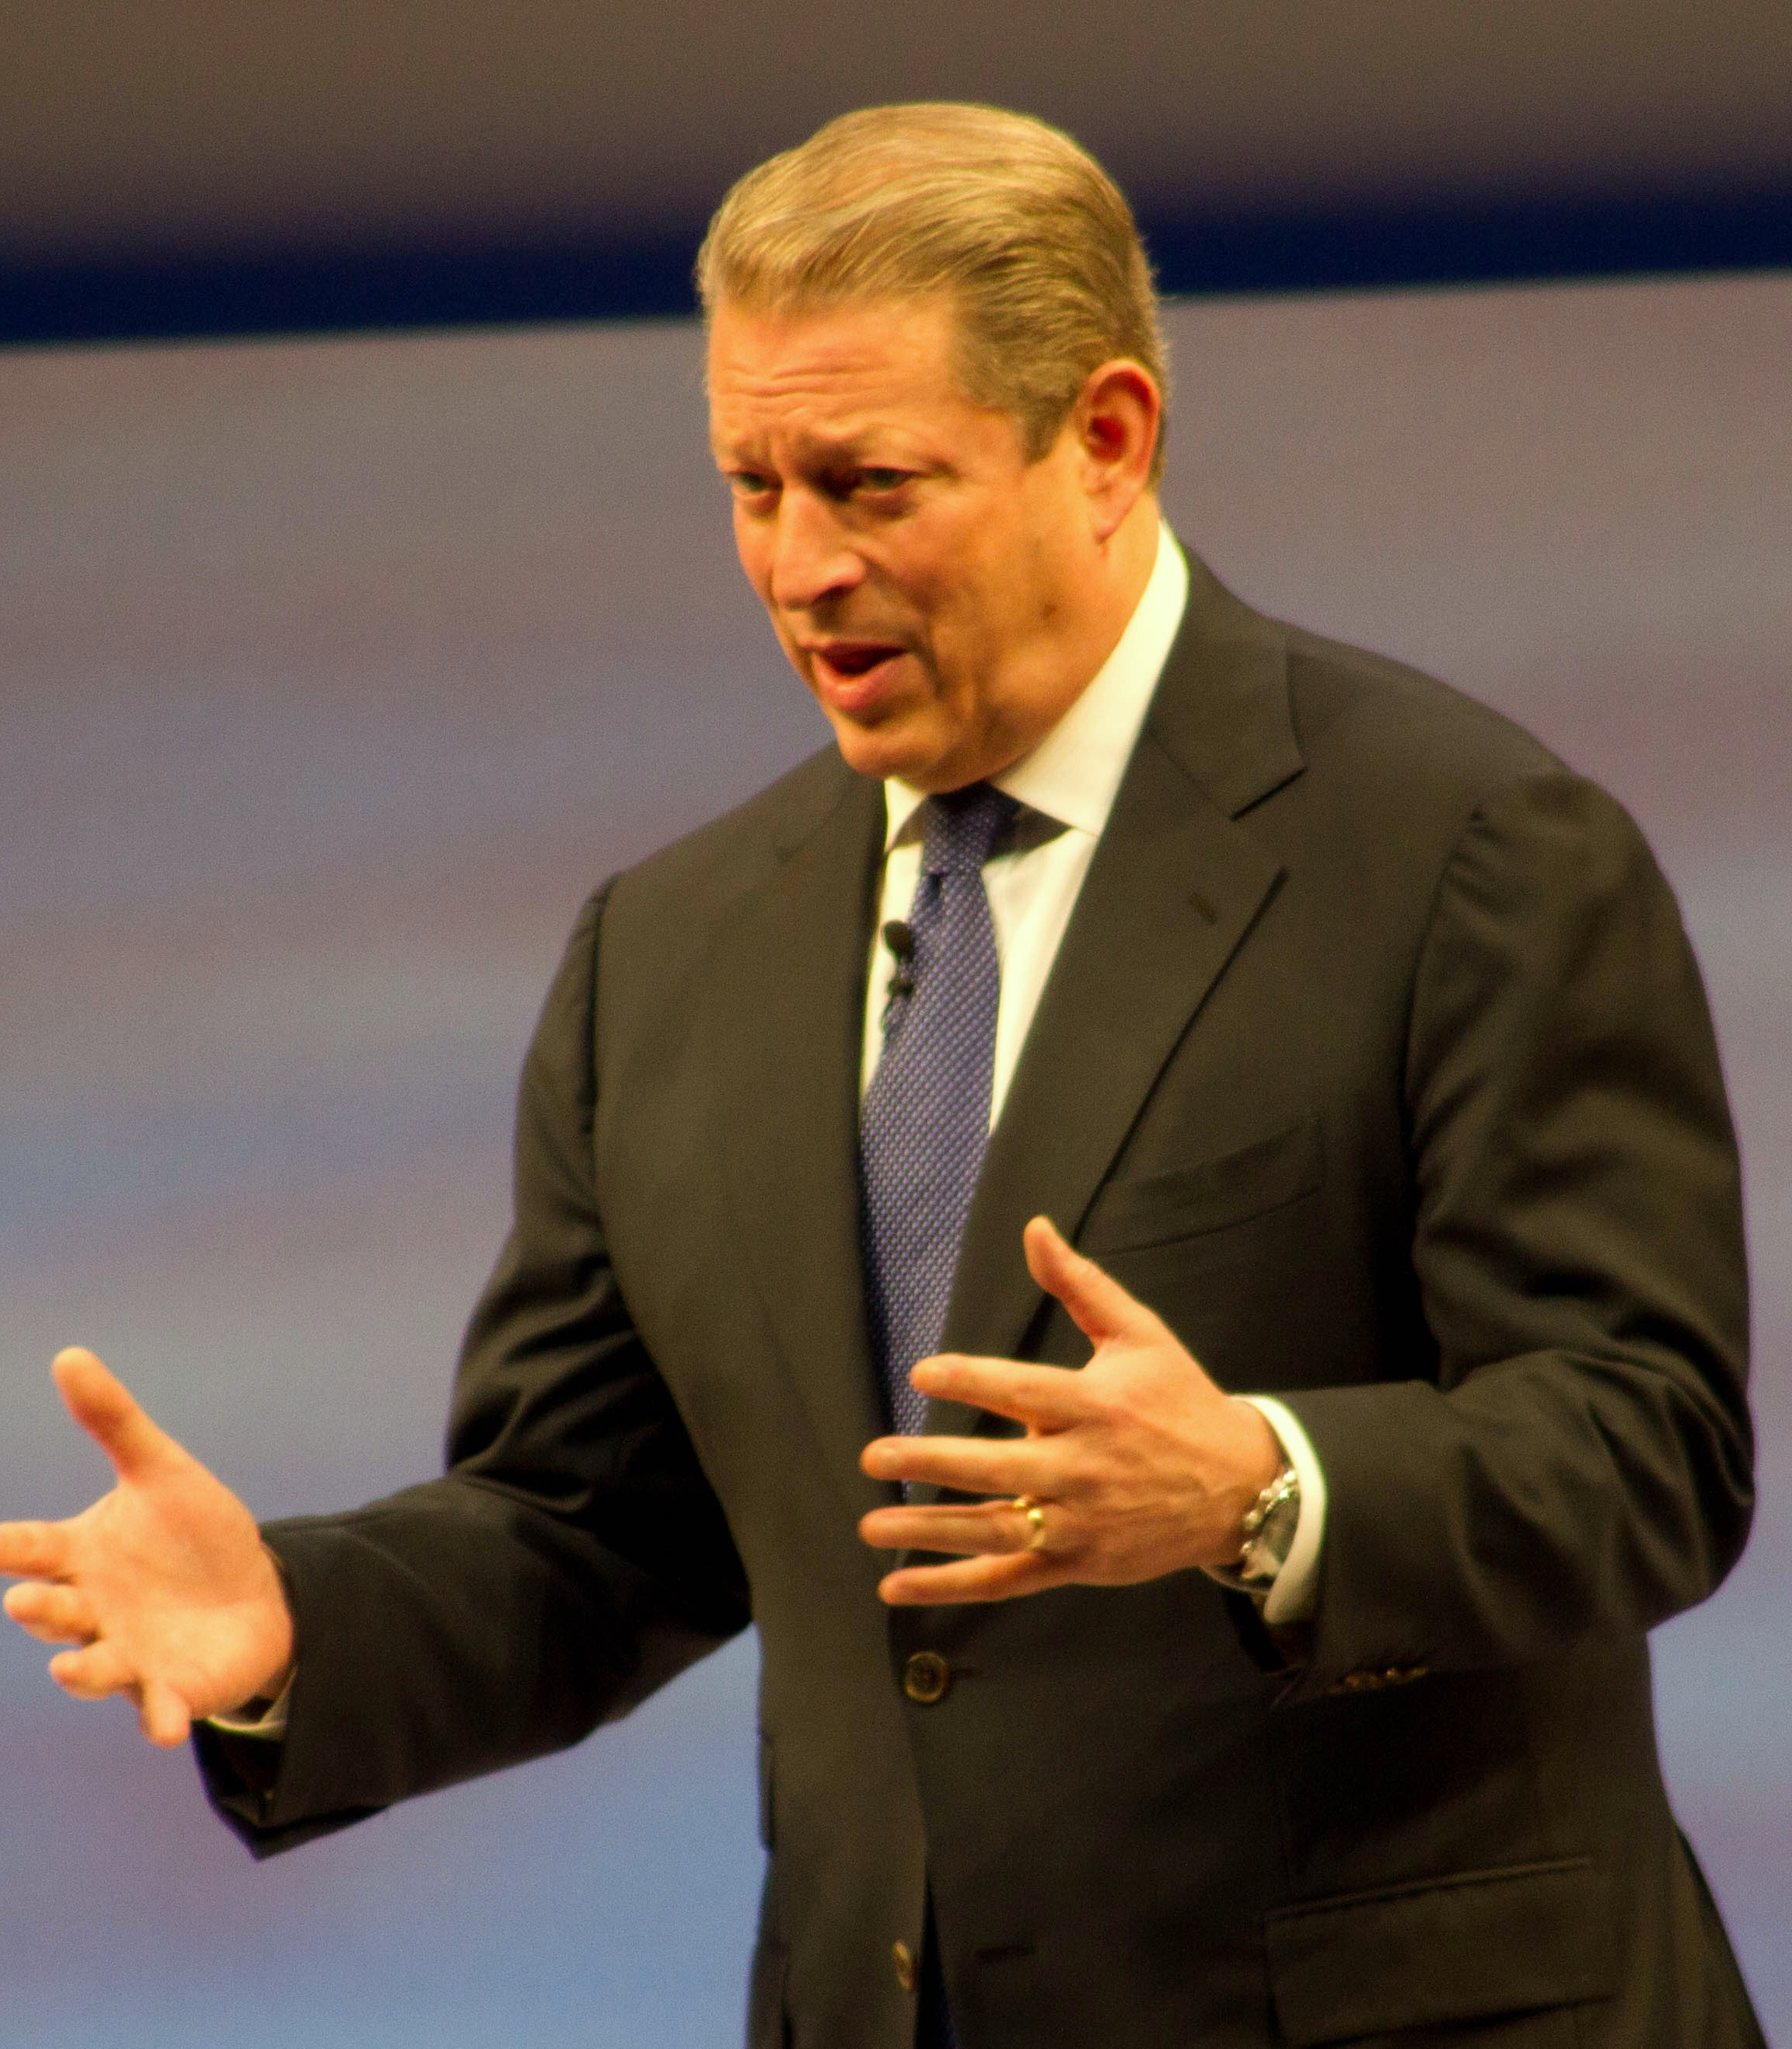 Al Gore - Simple English Wikipedia, the free encyclopedia